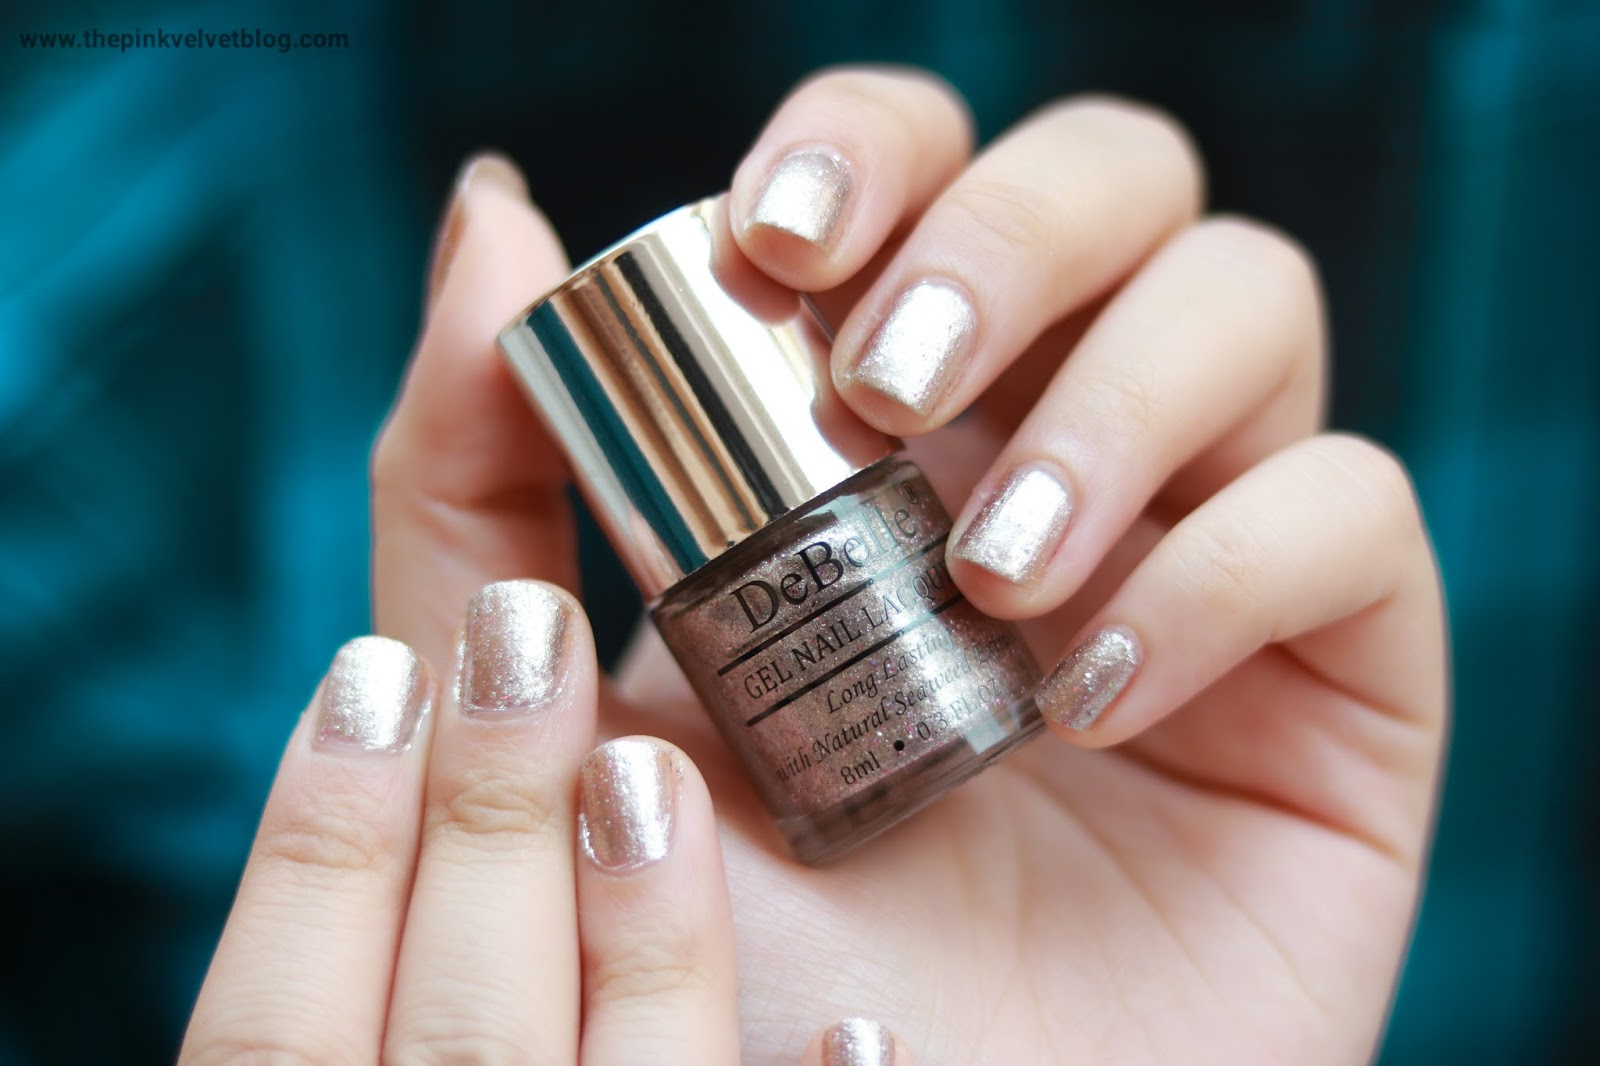 debelle nail paint sparkling dust